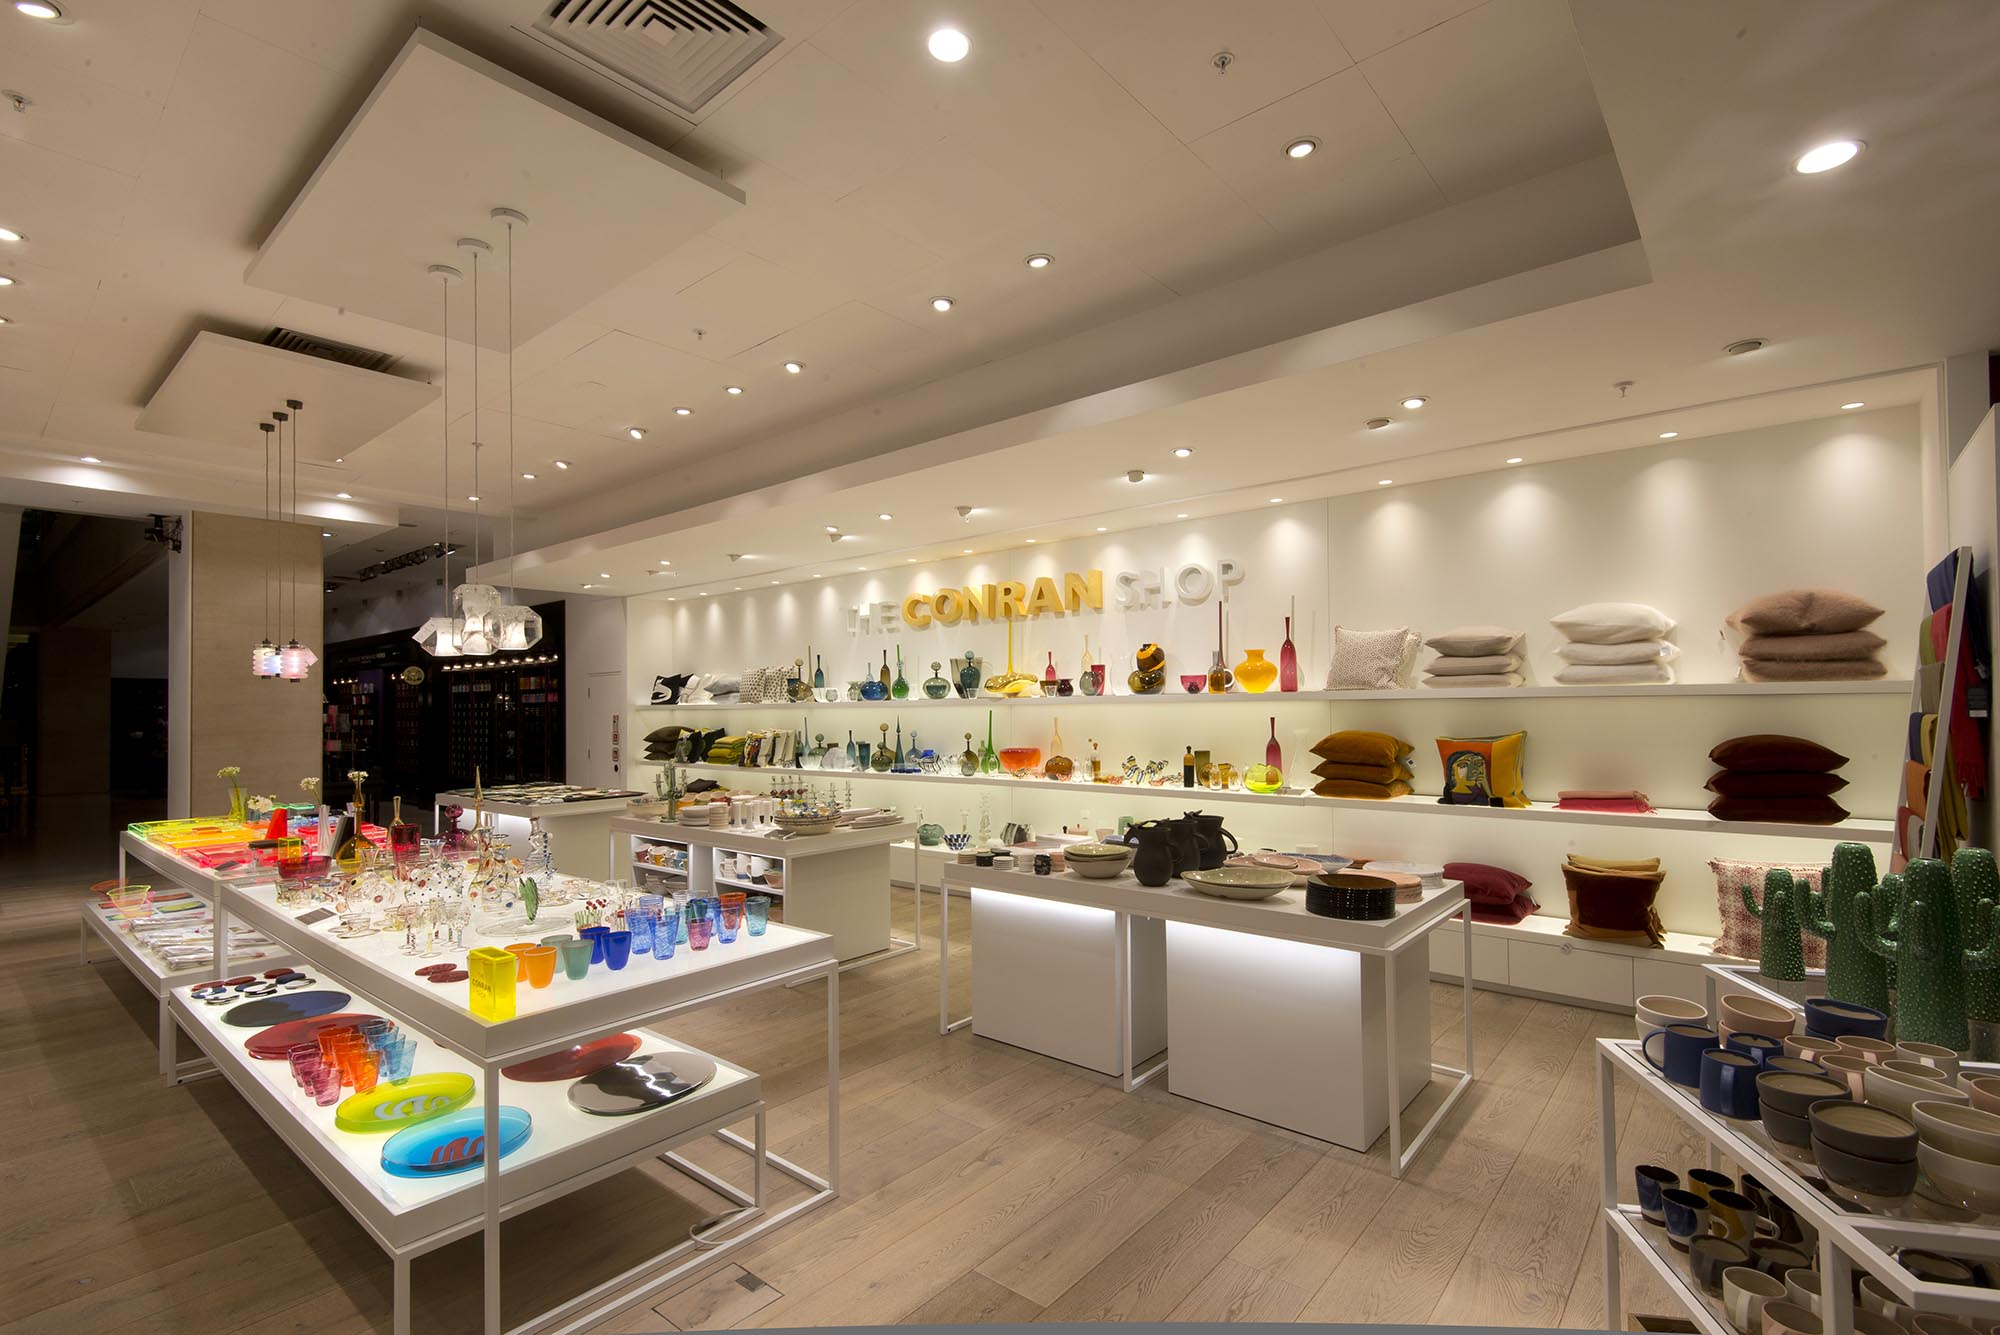 The conran shop selfridges london made in place design Interior design stores london